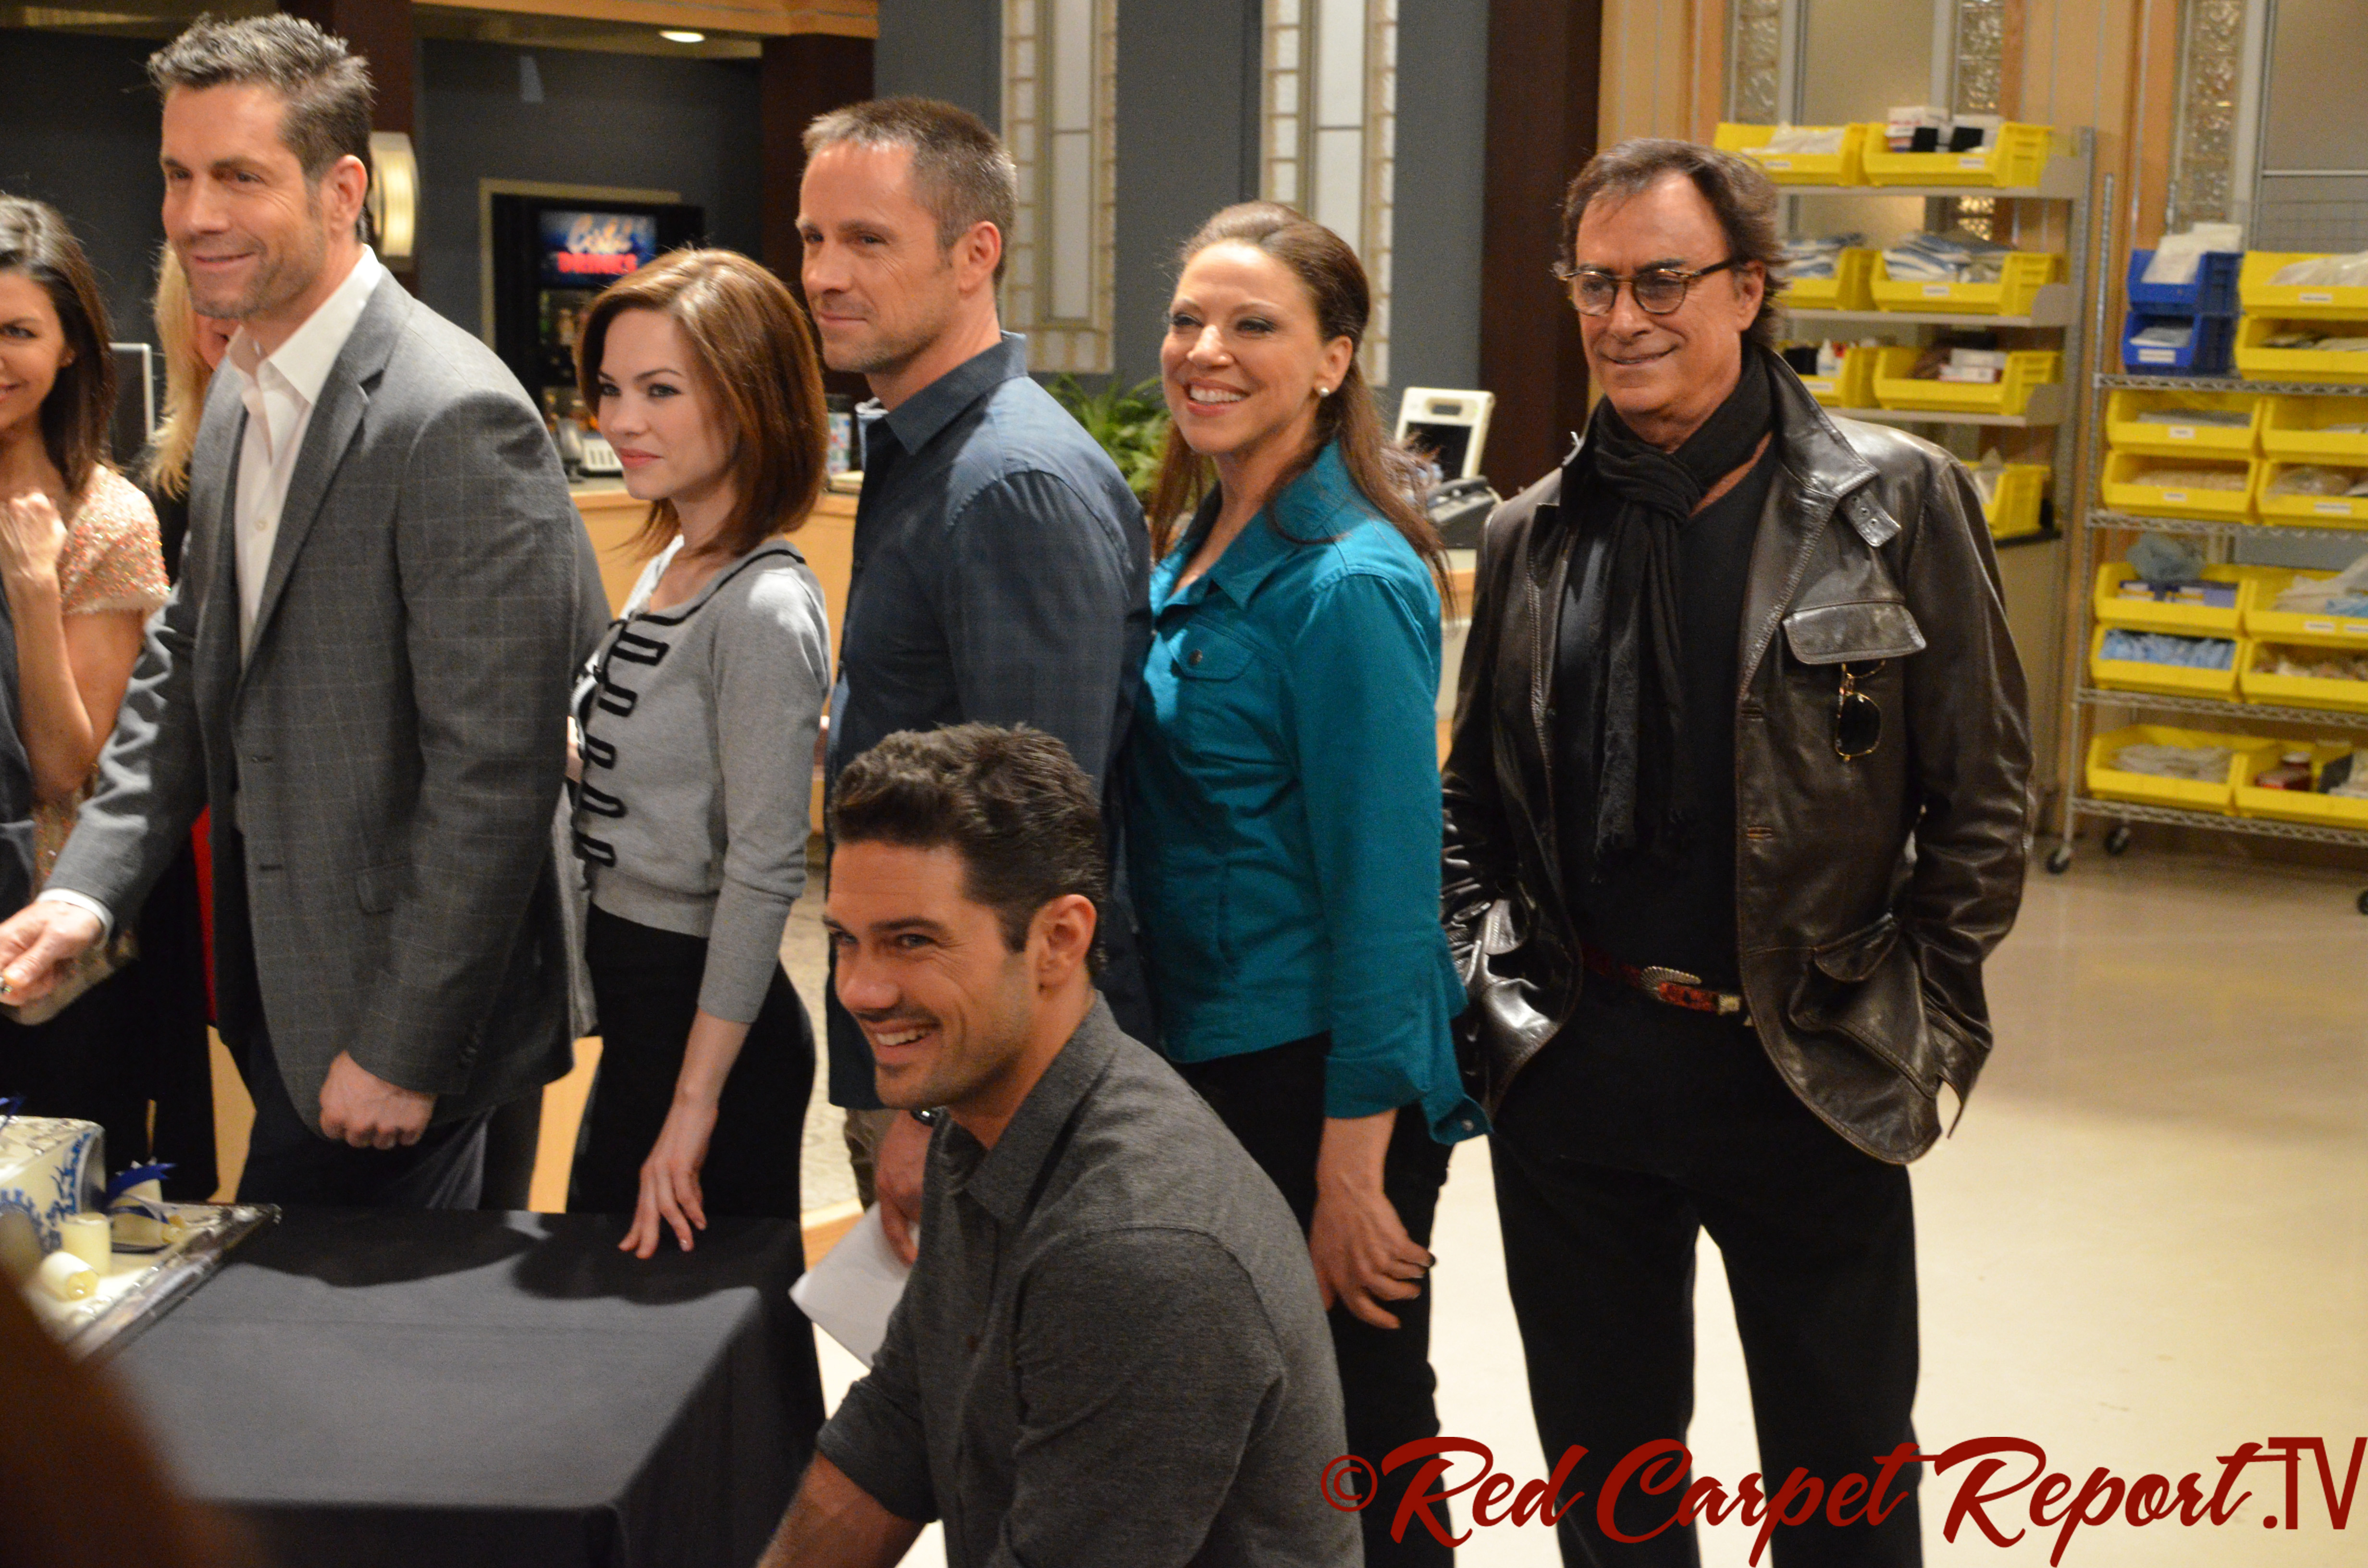 general hospital cast - photo #5